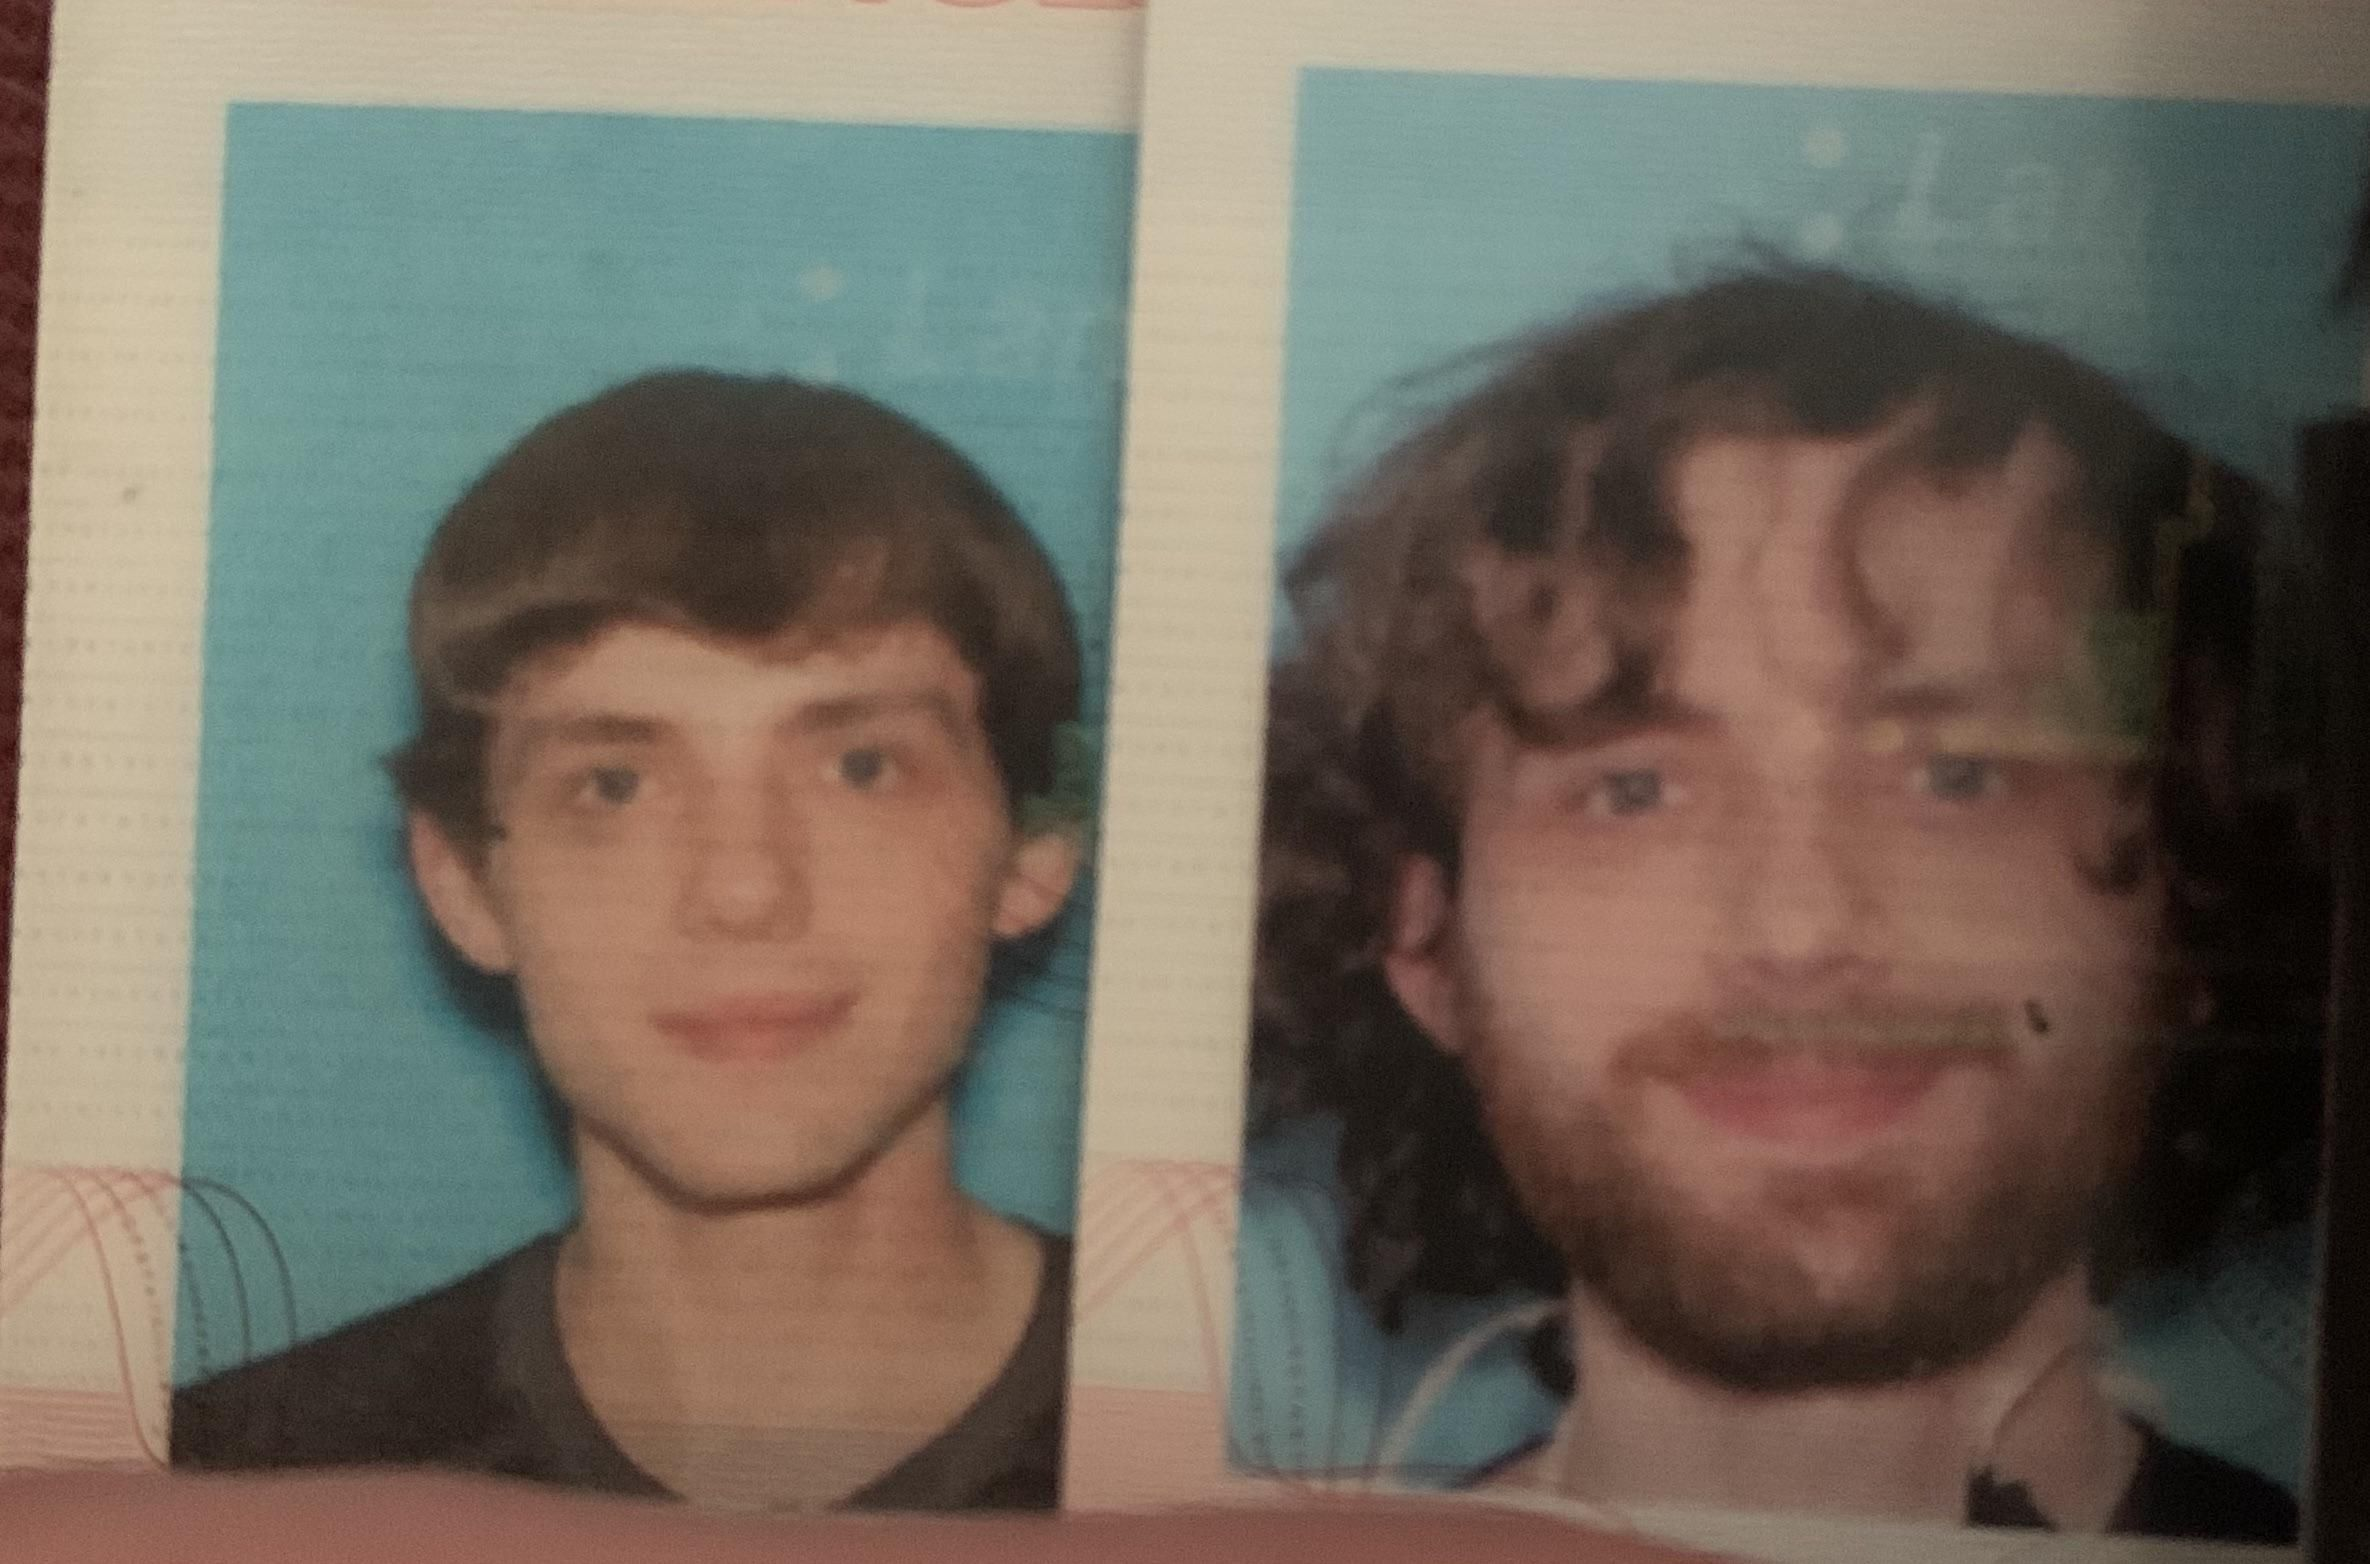 My drivers license pic from two years ago, compared to my post lockdown license looks like an anti drug psa.